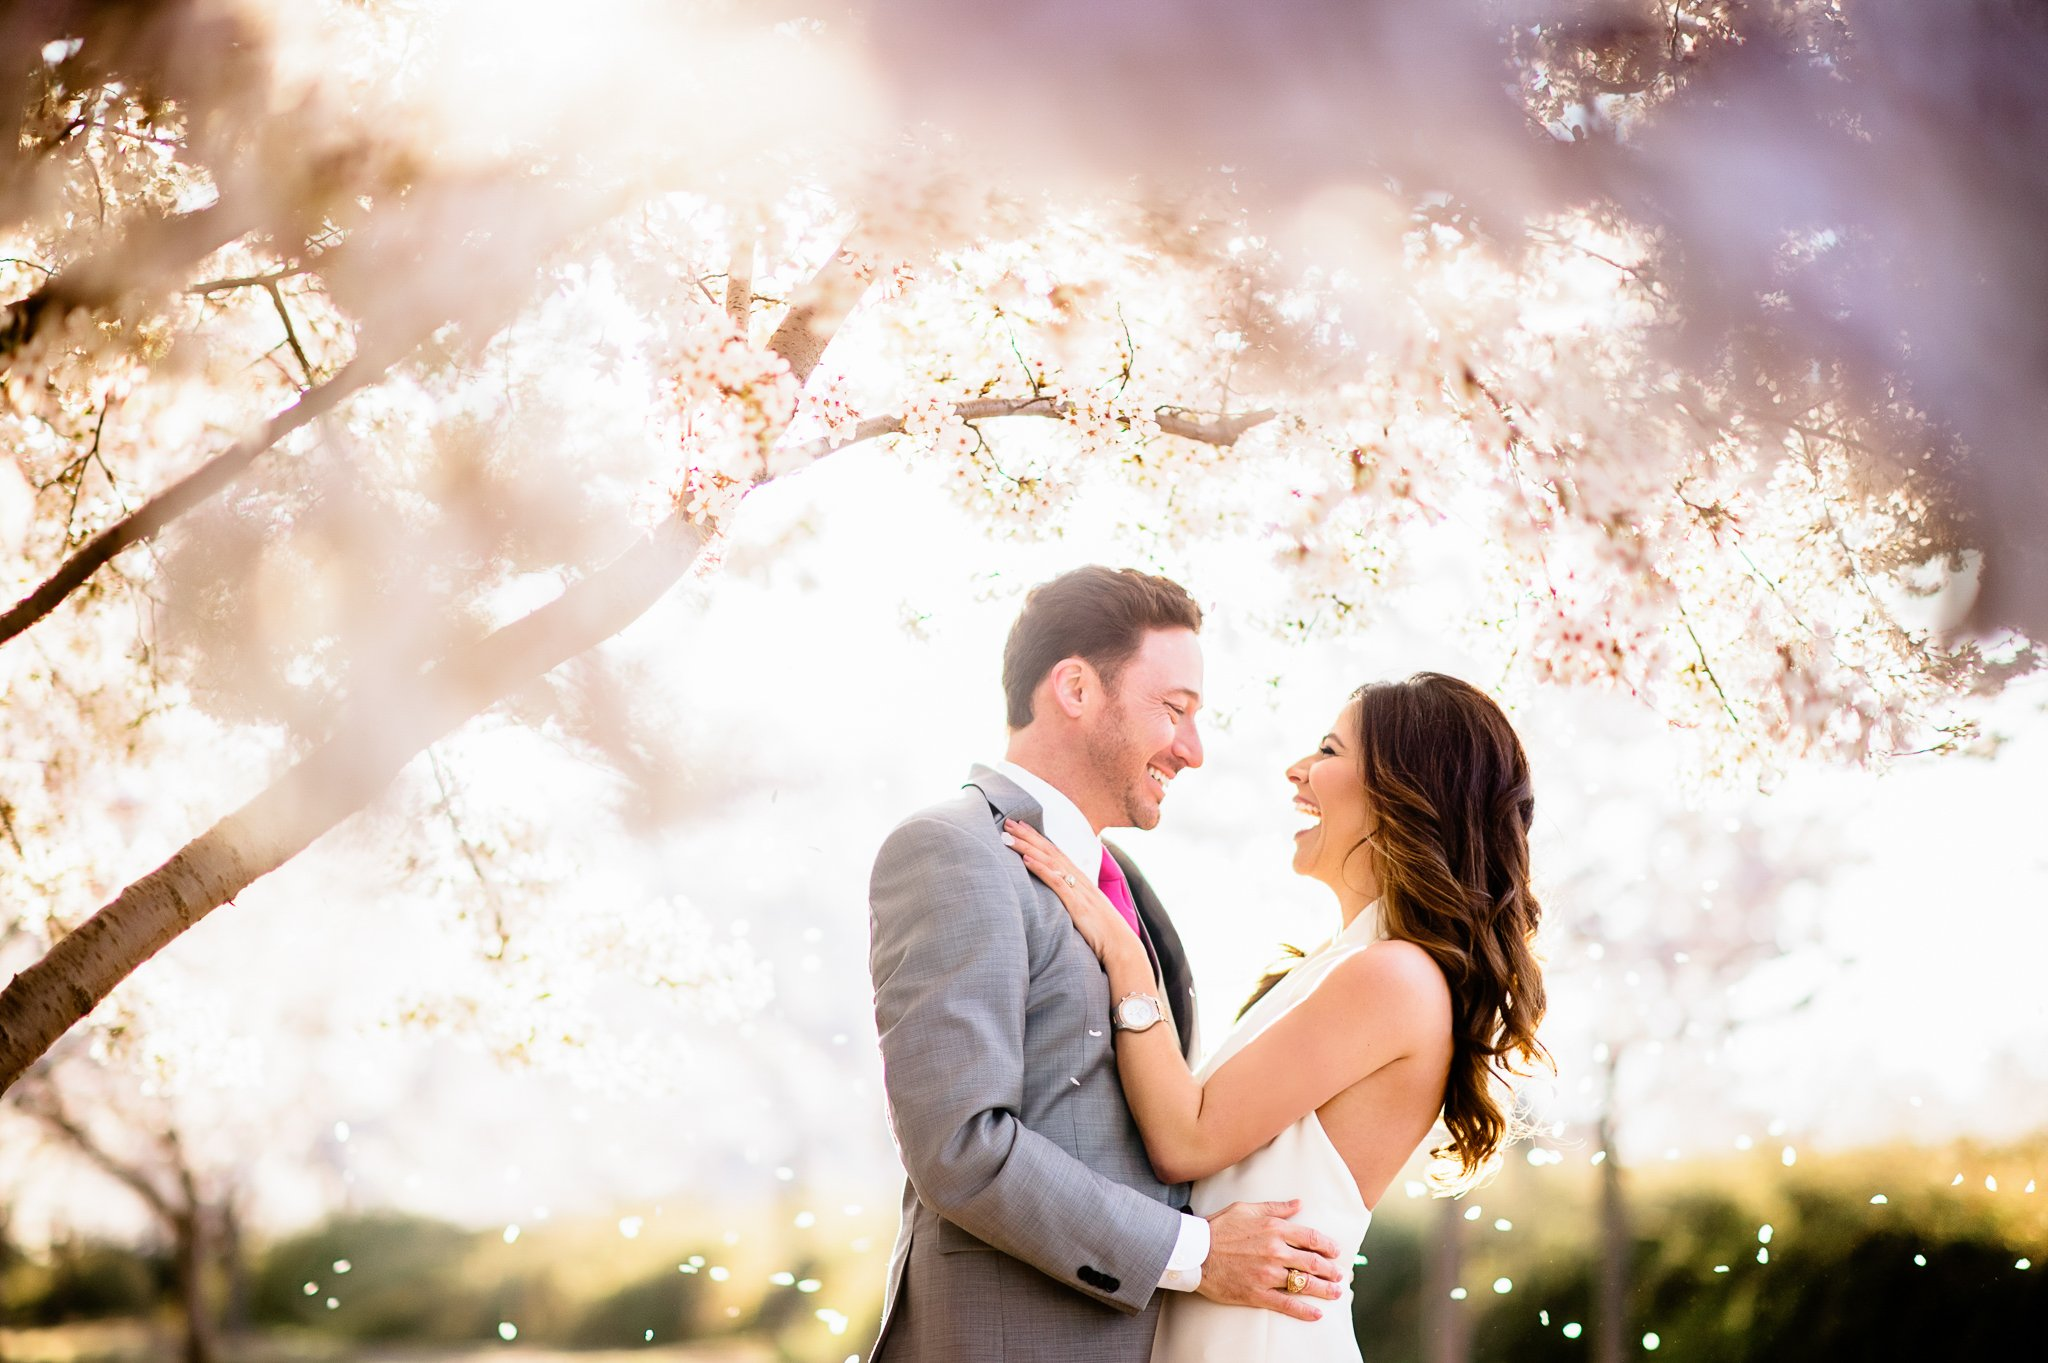 Www.cherry blossom for love dating romance and marriage